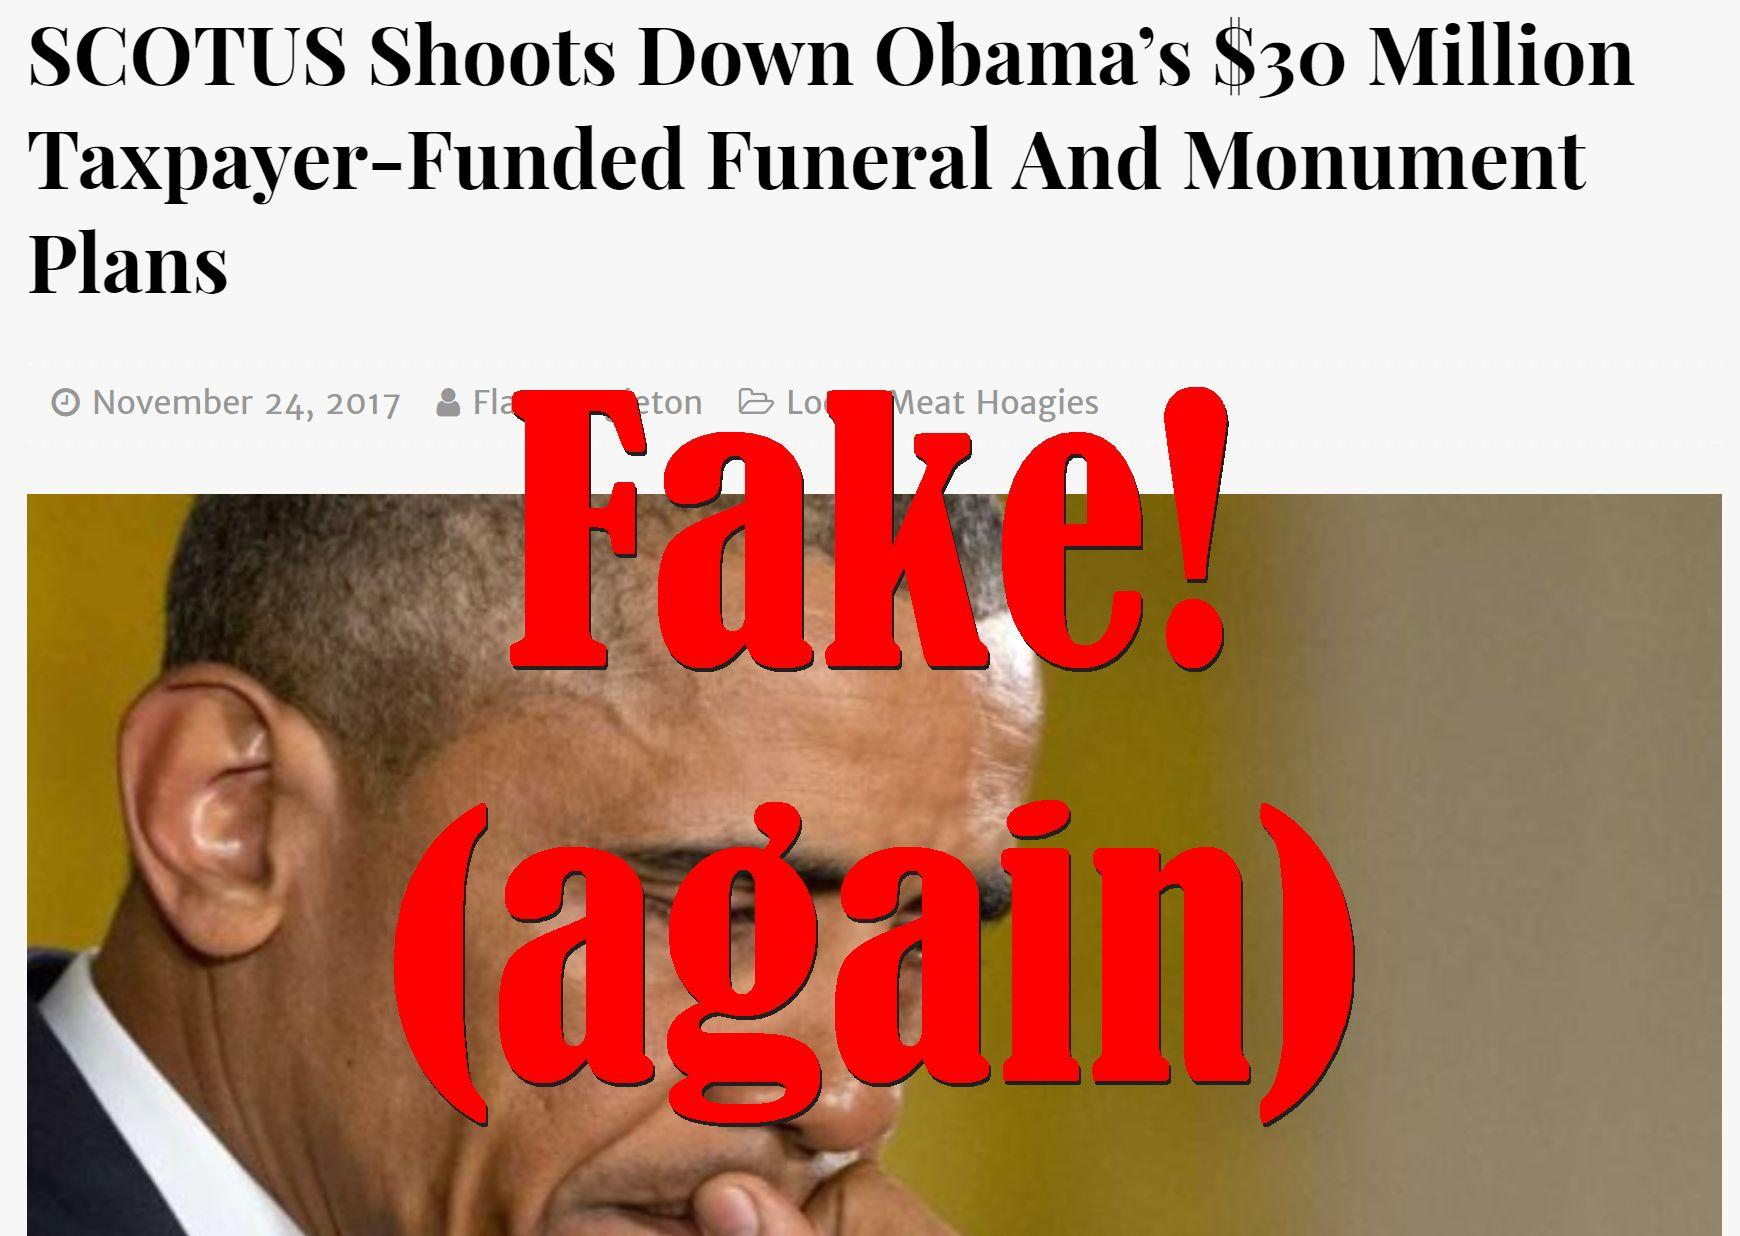 Fake News: SCOTUS Did NOT Shoot Down Obama's $30 Million Taxpayer-Funded Funeral And Monument Plans